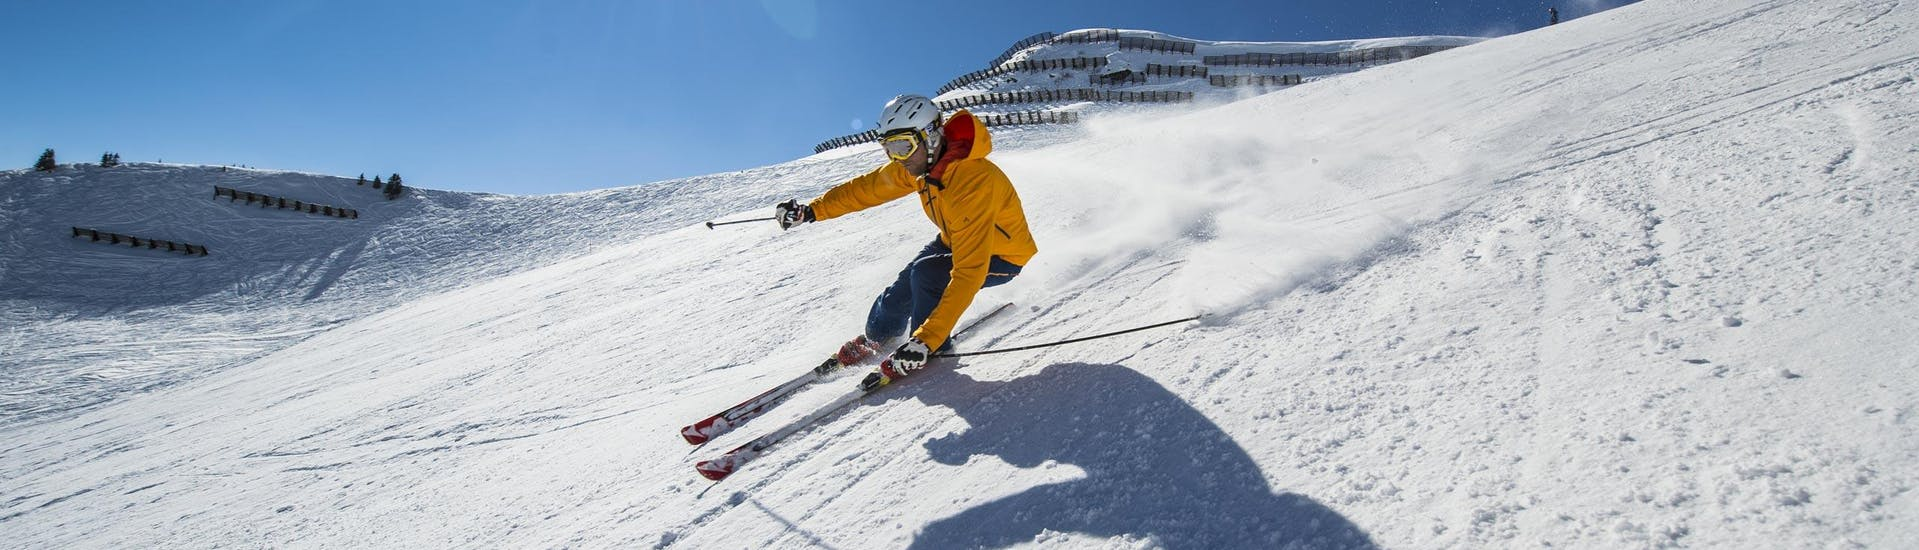 Private Ski Lesson for All Levels in the Dolomites: A skier is skiing down a sunny ski slope while participating in an activity offered by Walter Schramm.